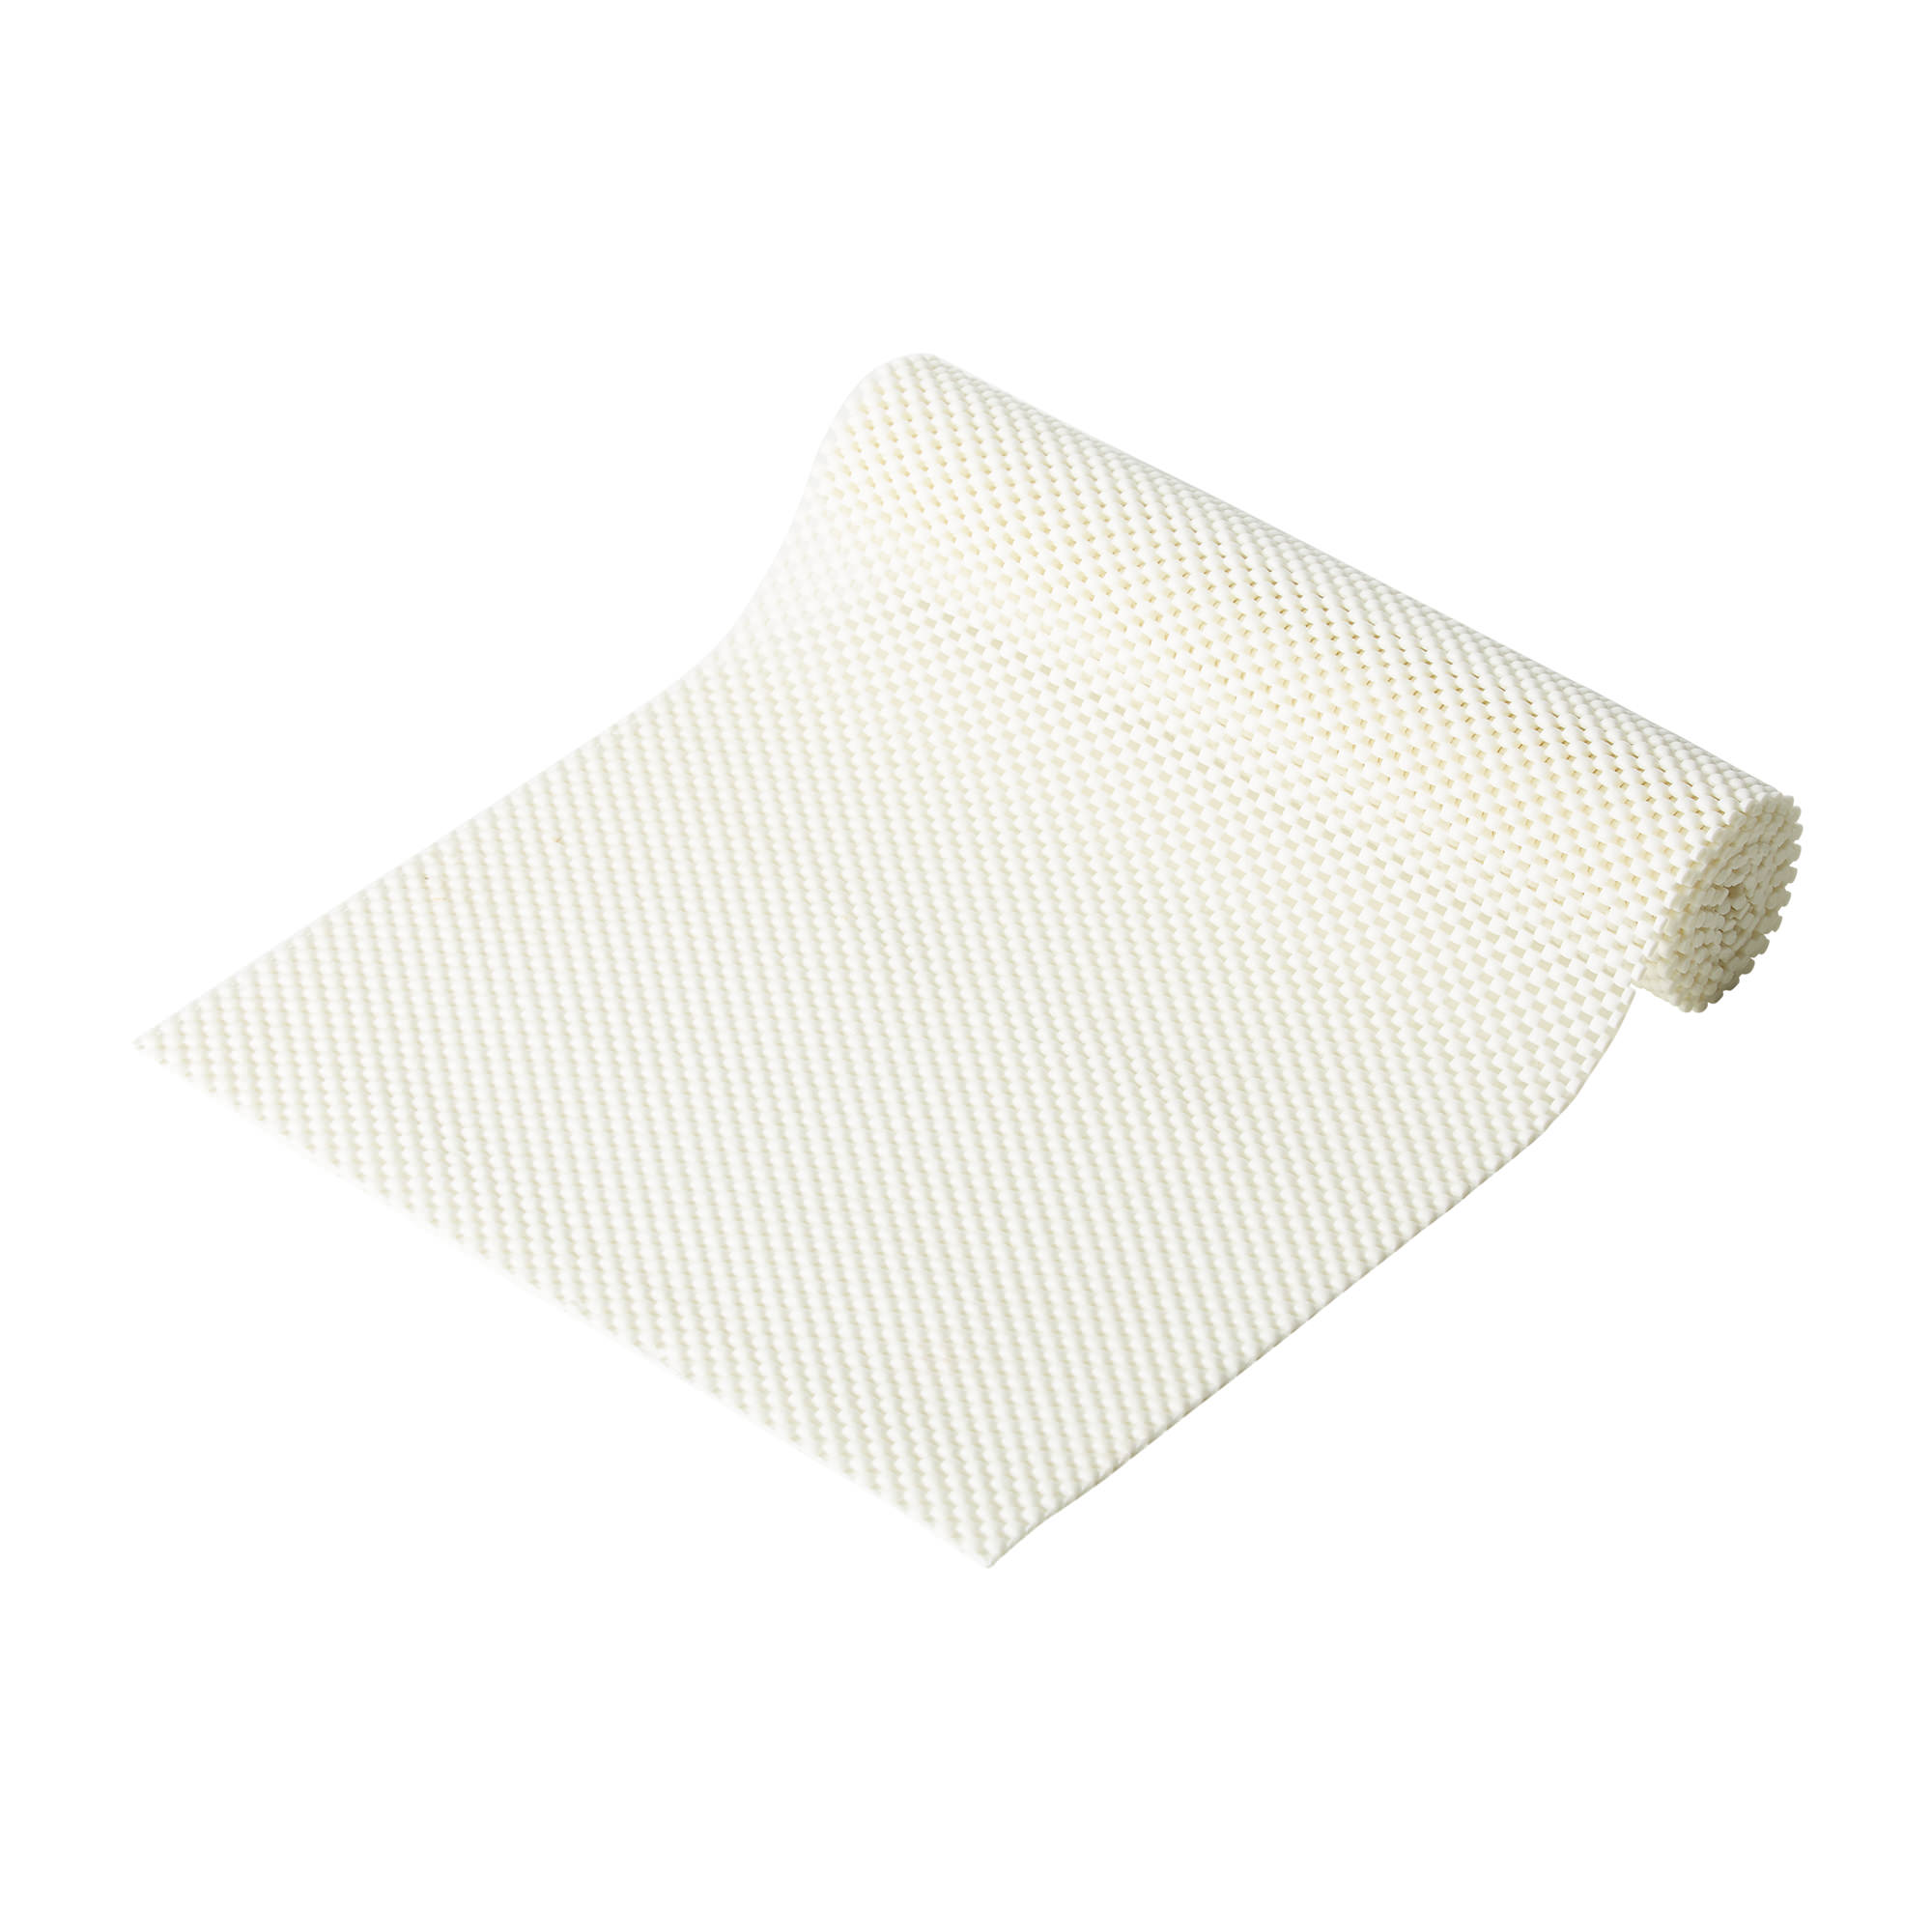 Kitchen Pro Anti-Slip Mat 30x150cm White